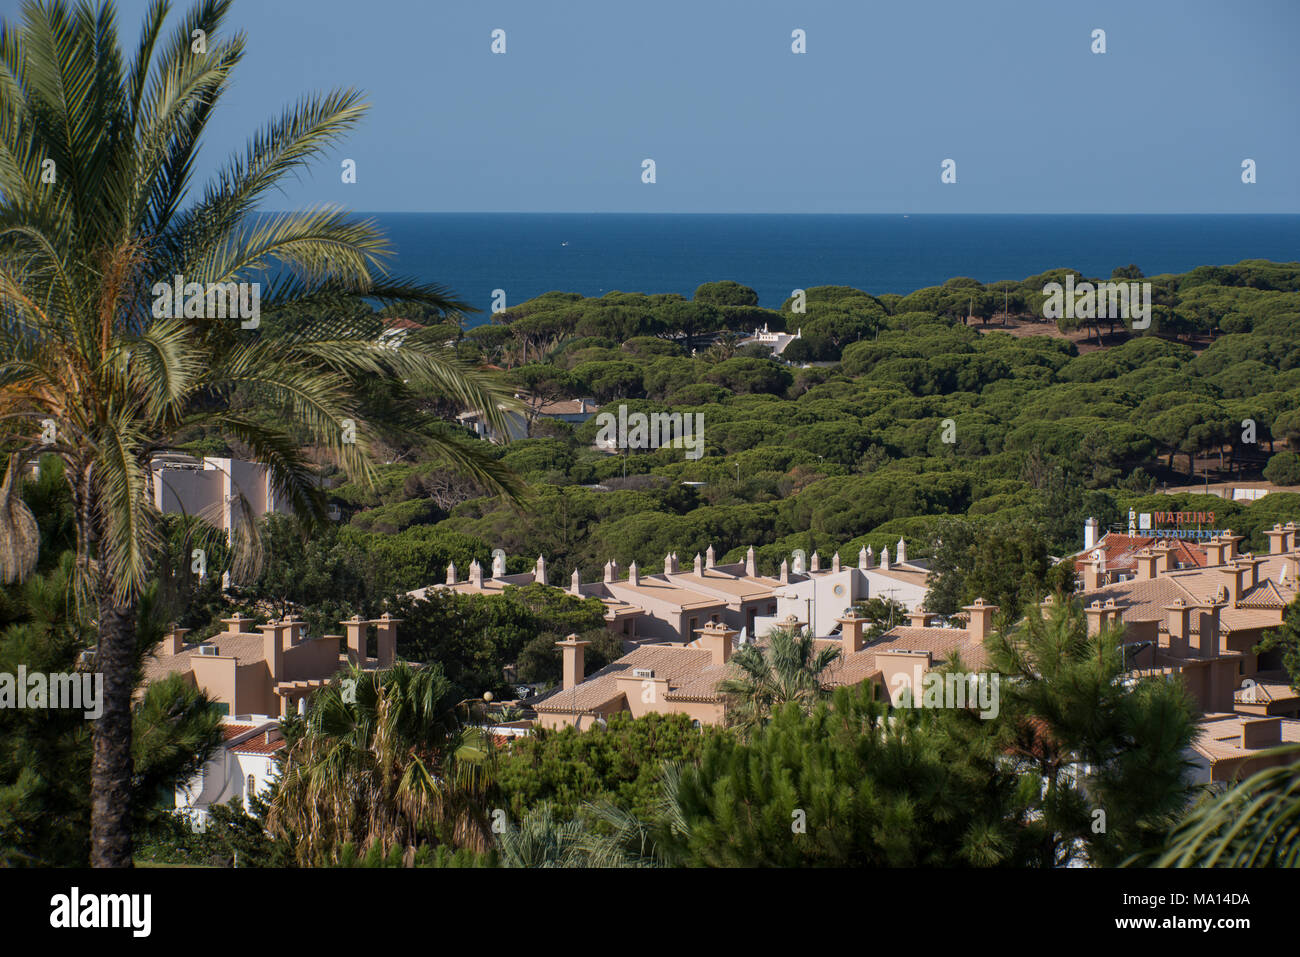 View over the Atlantic Ocean and wooded coastal development near Albufeira, Portugal - Stock Image